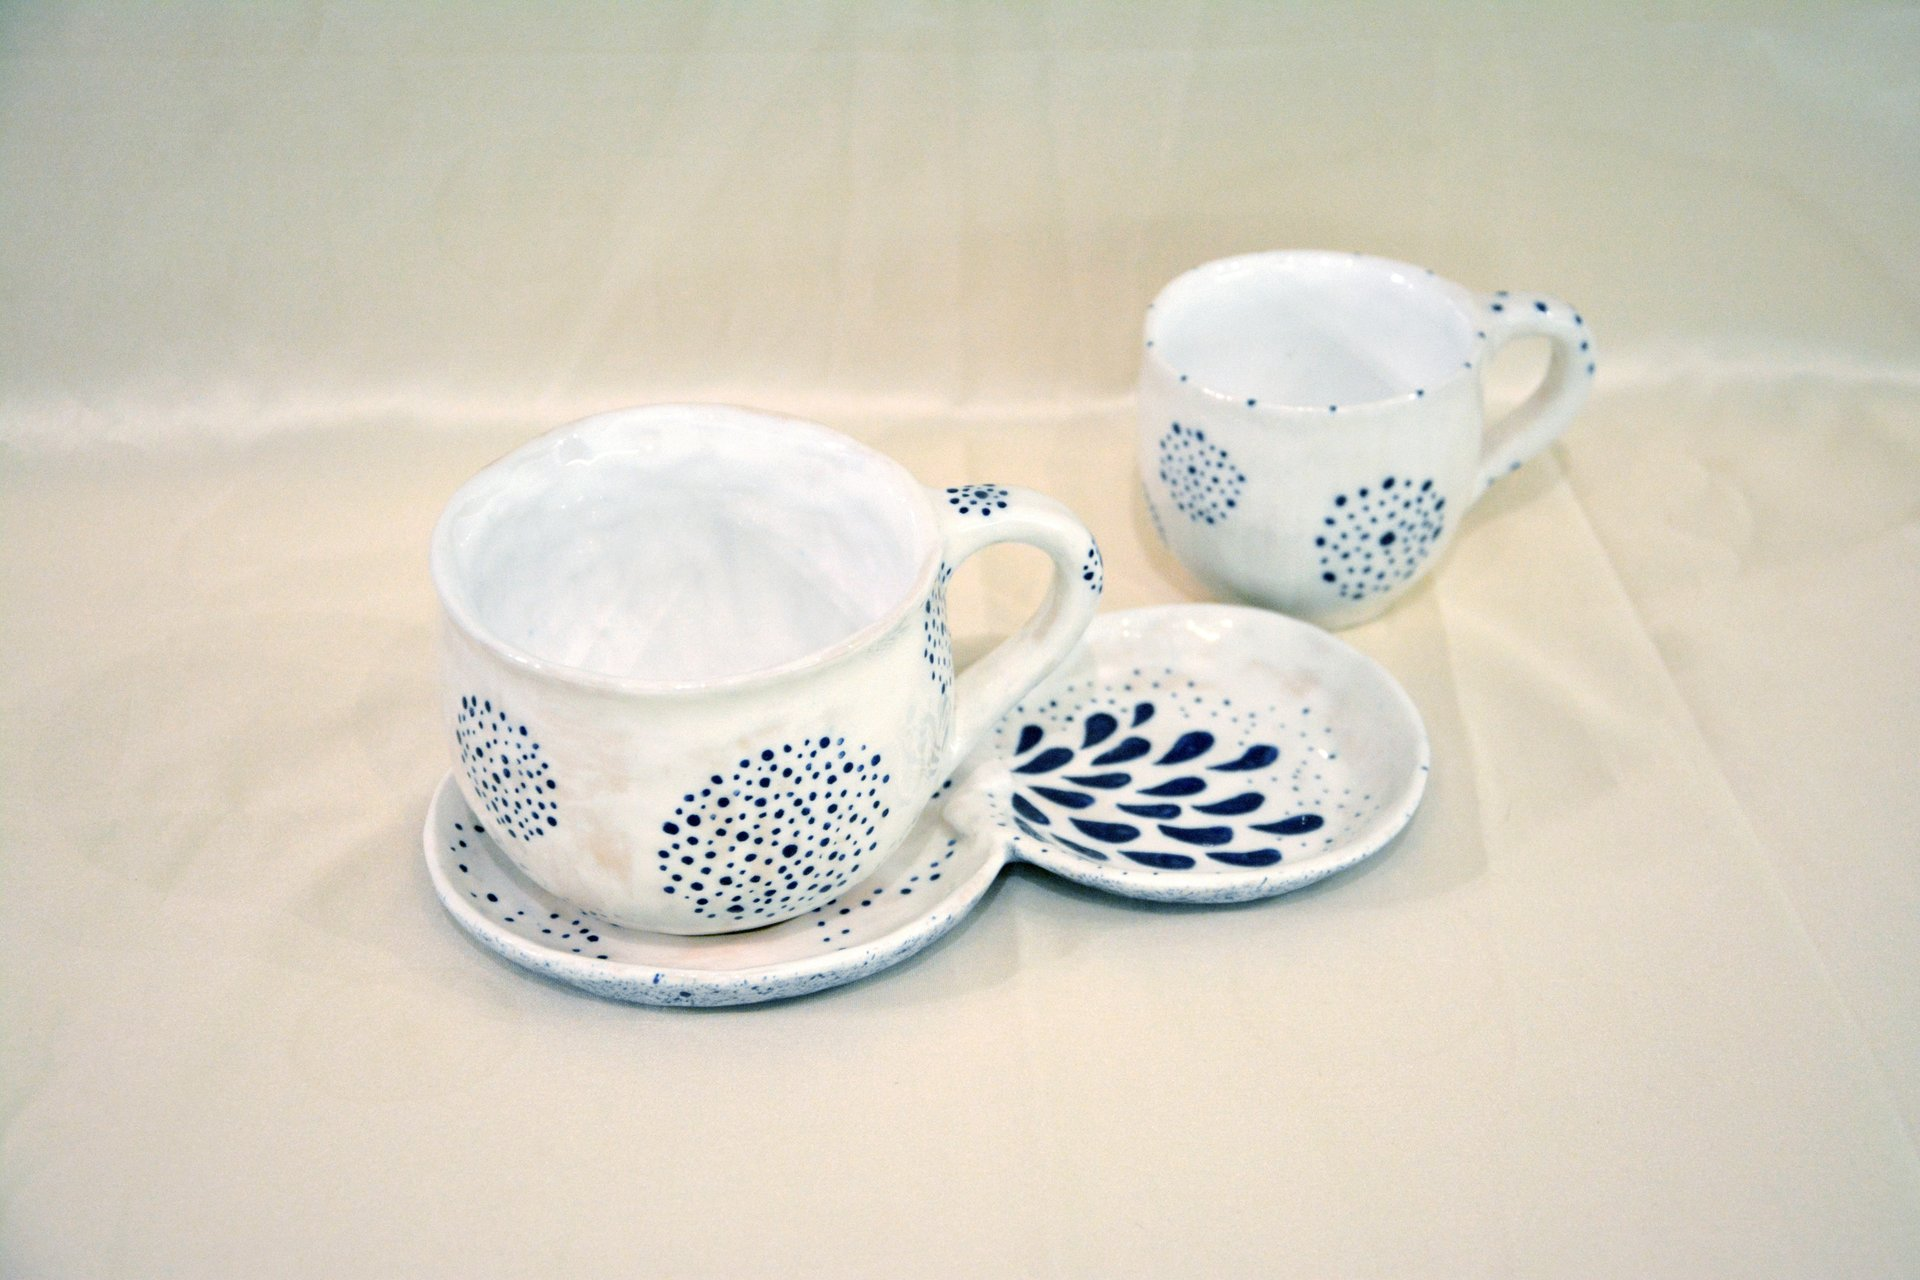 A pair of white cups with a blue Dot-Circle pattern - Cups, glasses, mugs, 300 ml and 200 ml, photo 3 of 4.